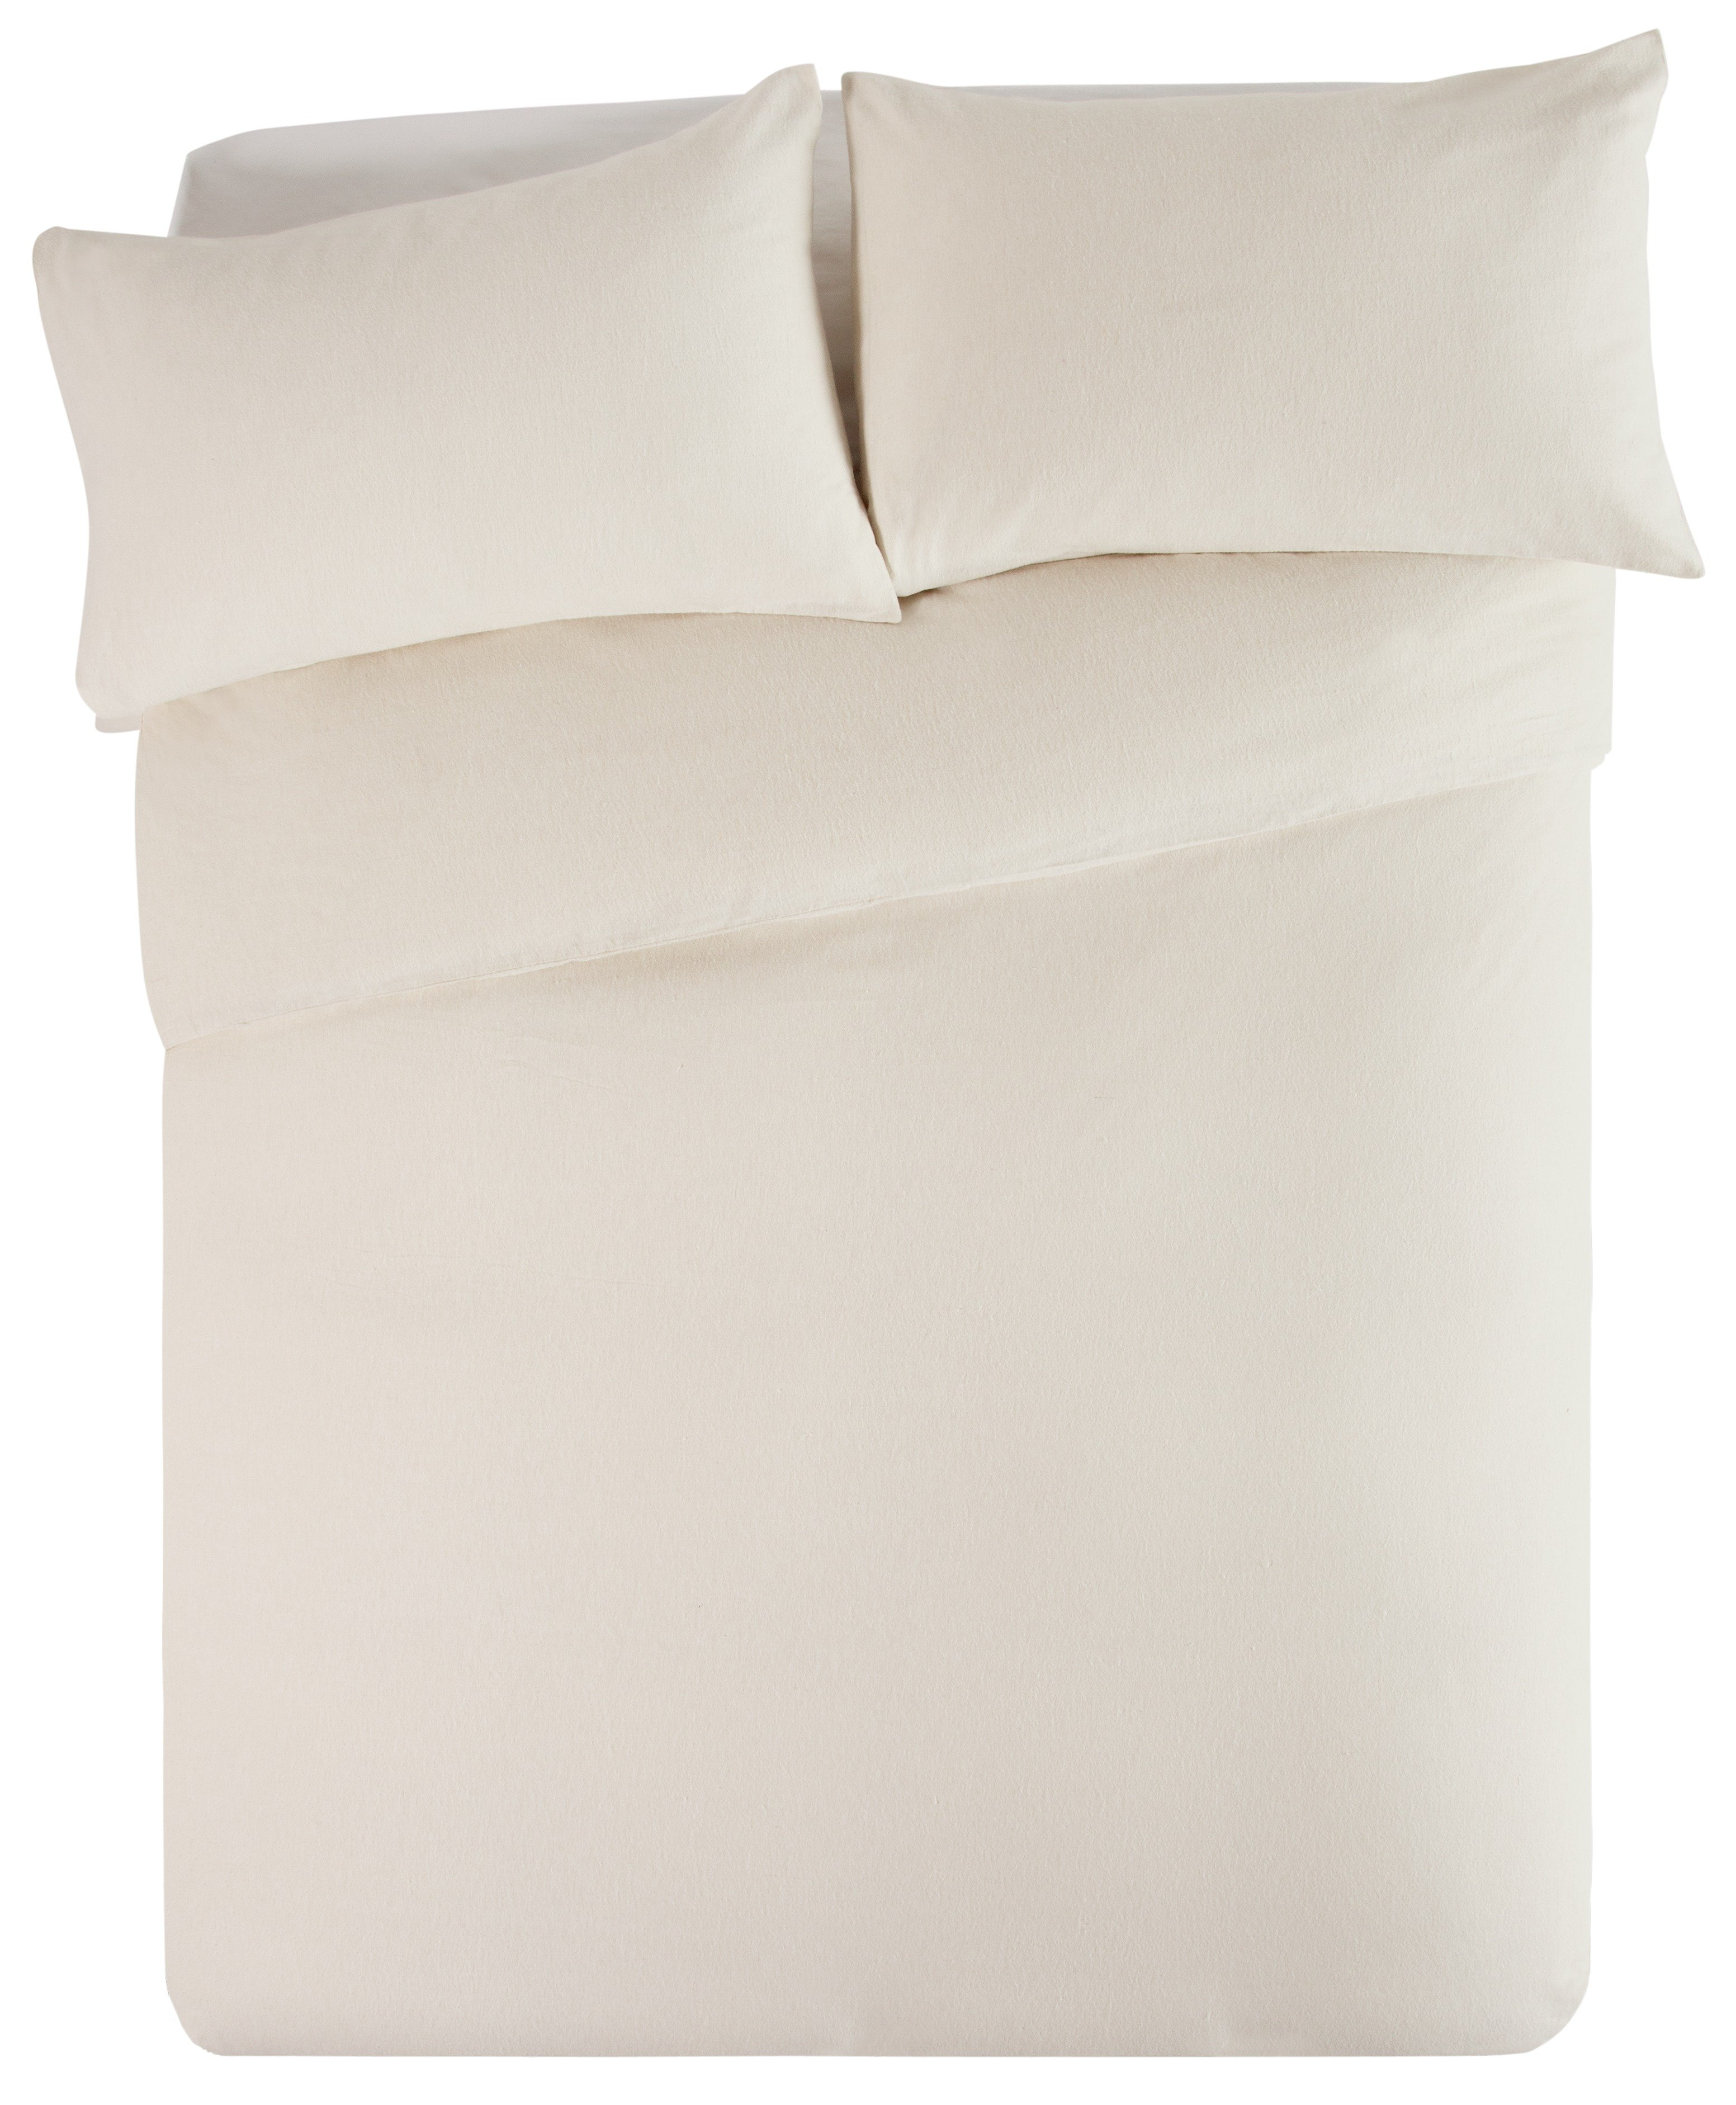 Collection - Cream Brushed Cotton - Bedding Set - Double